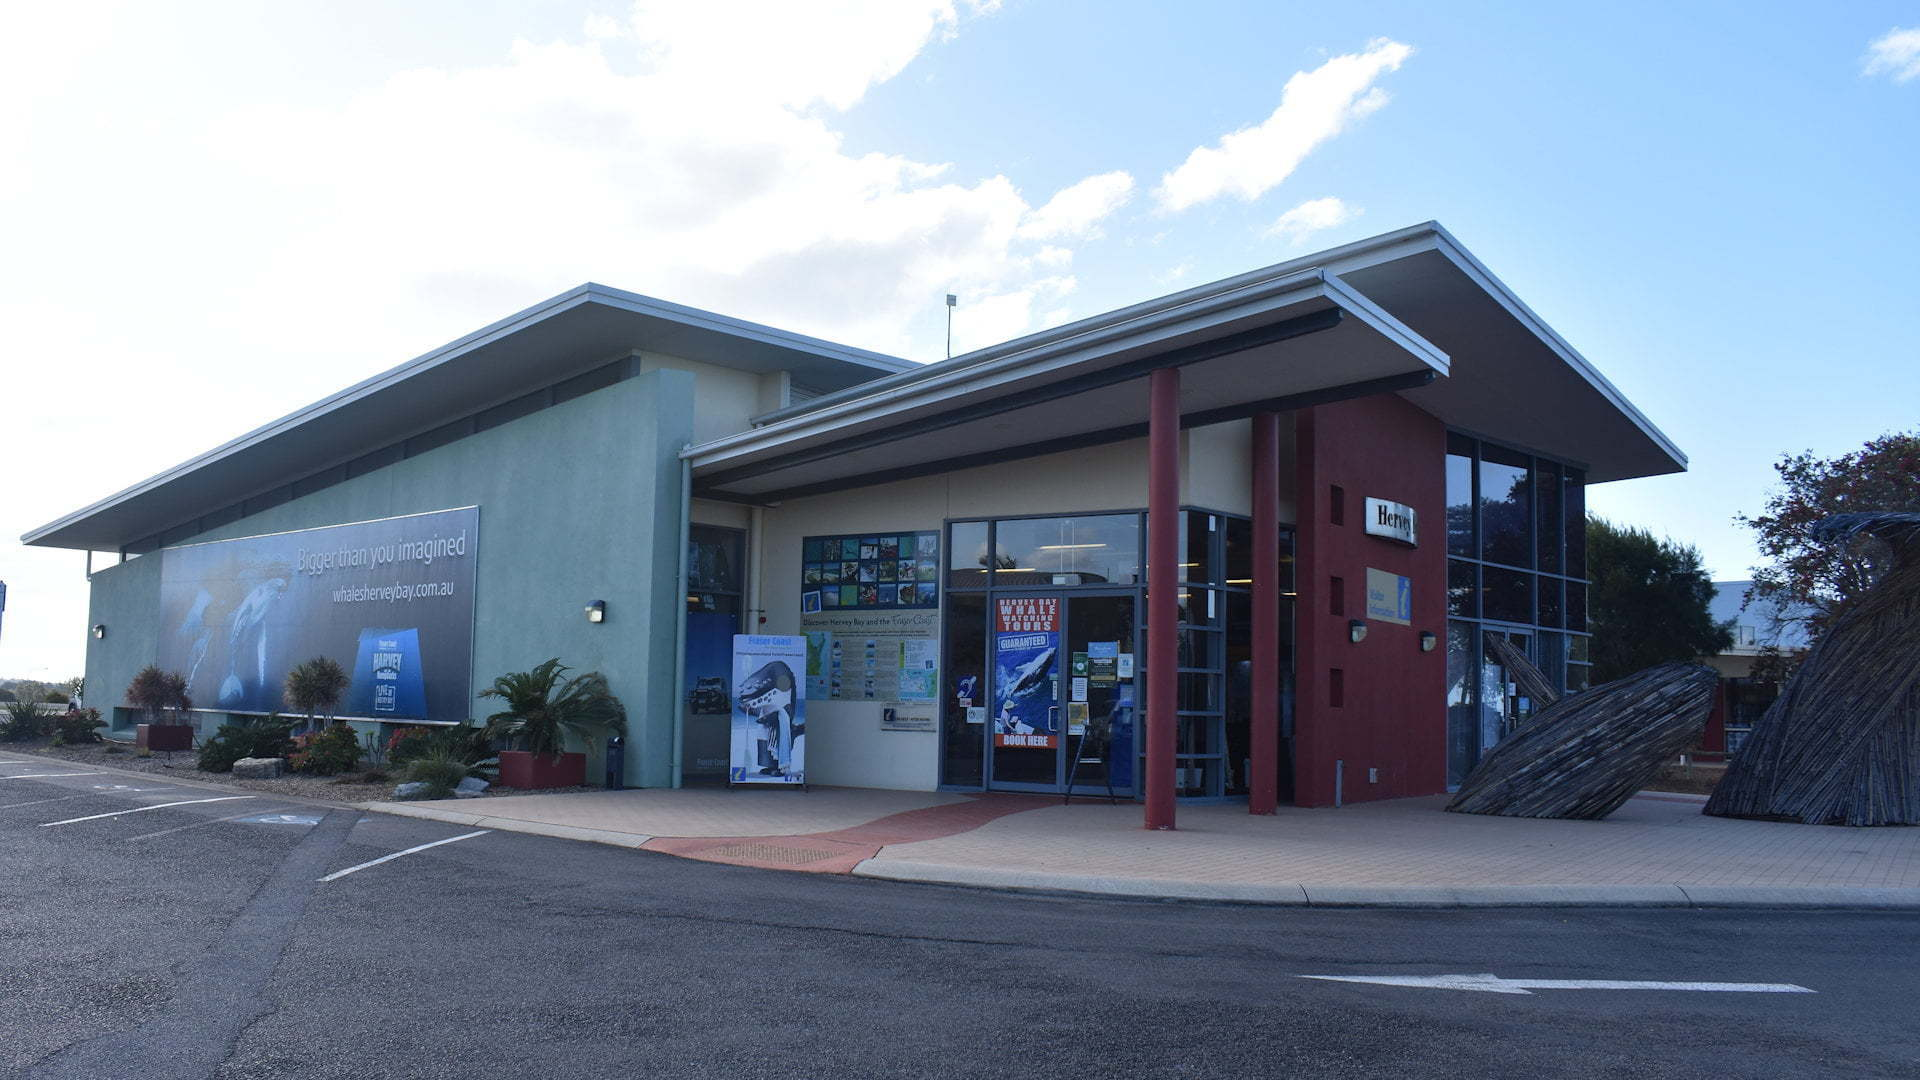 Hervey Bay Visitor Information Centre